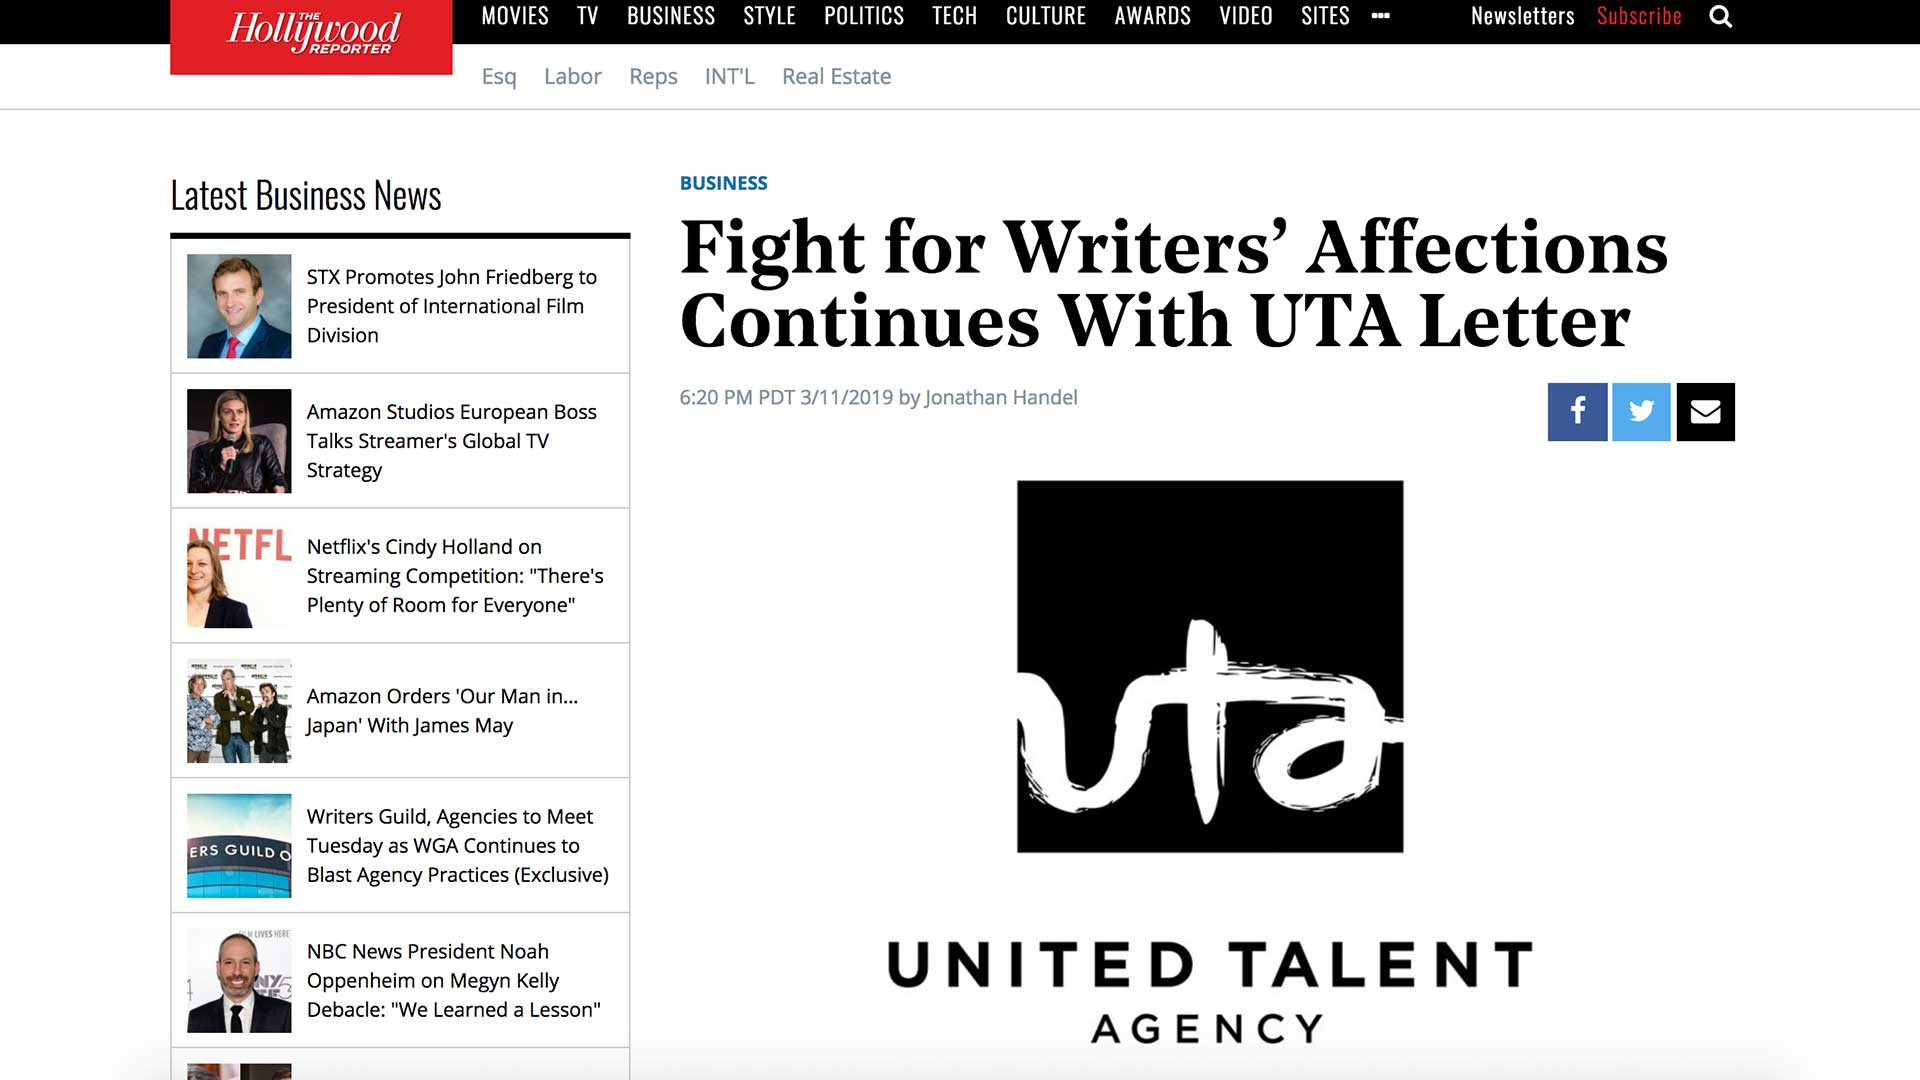 Fairness Rocks News Fight for Writers' Affections Continues With UTA Letter